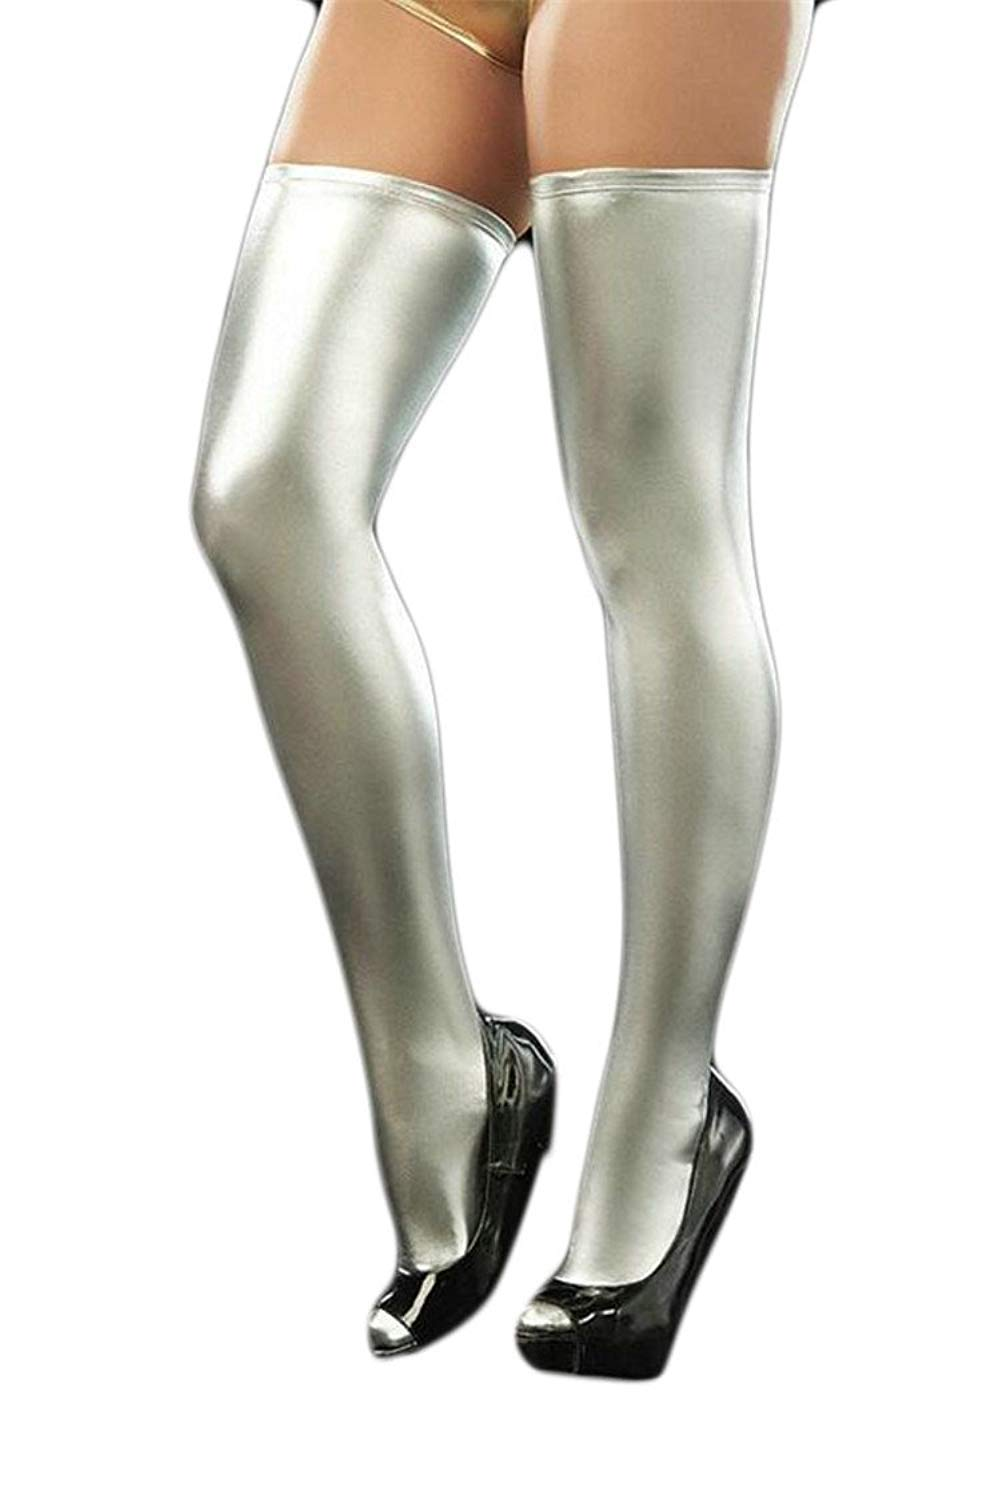 59e3b66630a Get Quotations · GAGA Women s Stylish Sexy PVC Leather Wet Look Tights  Thigh High Stockings